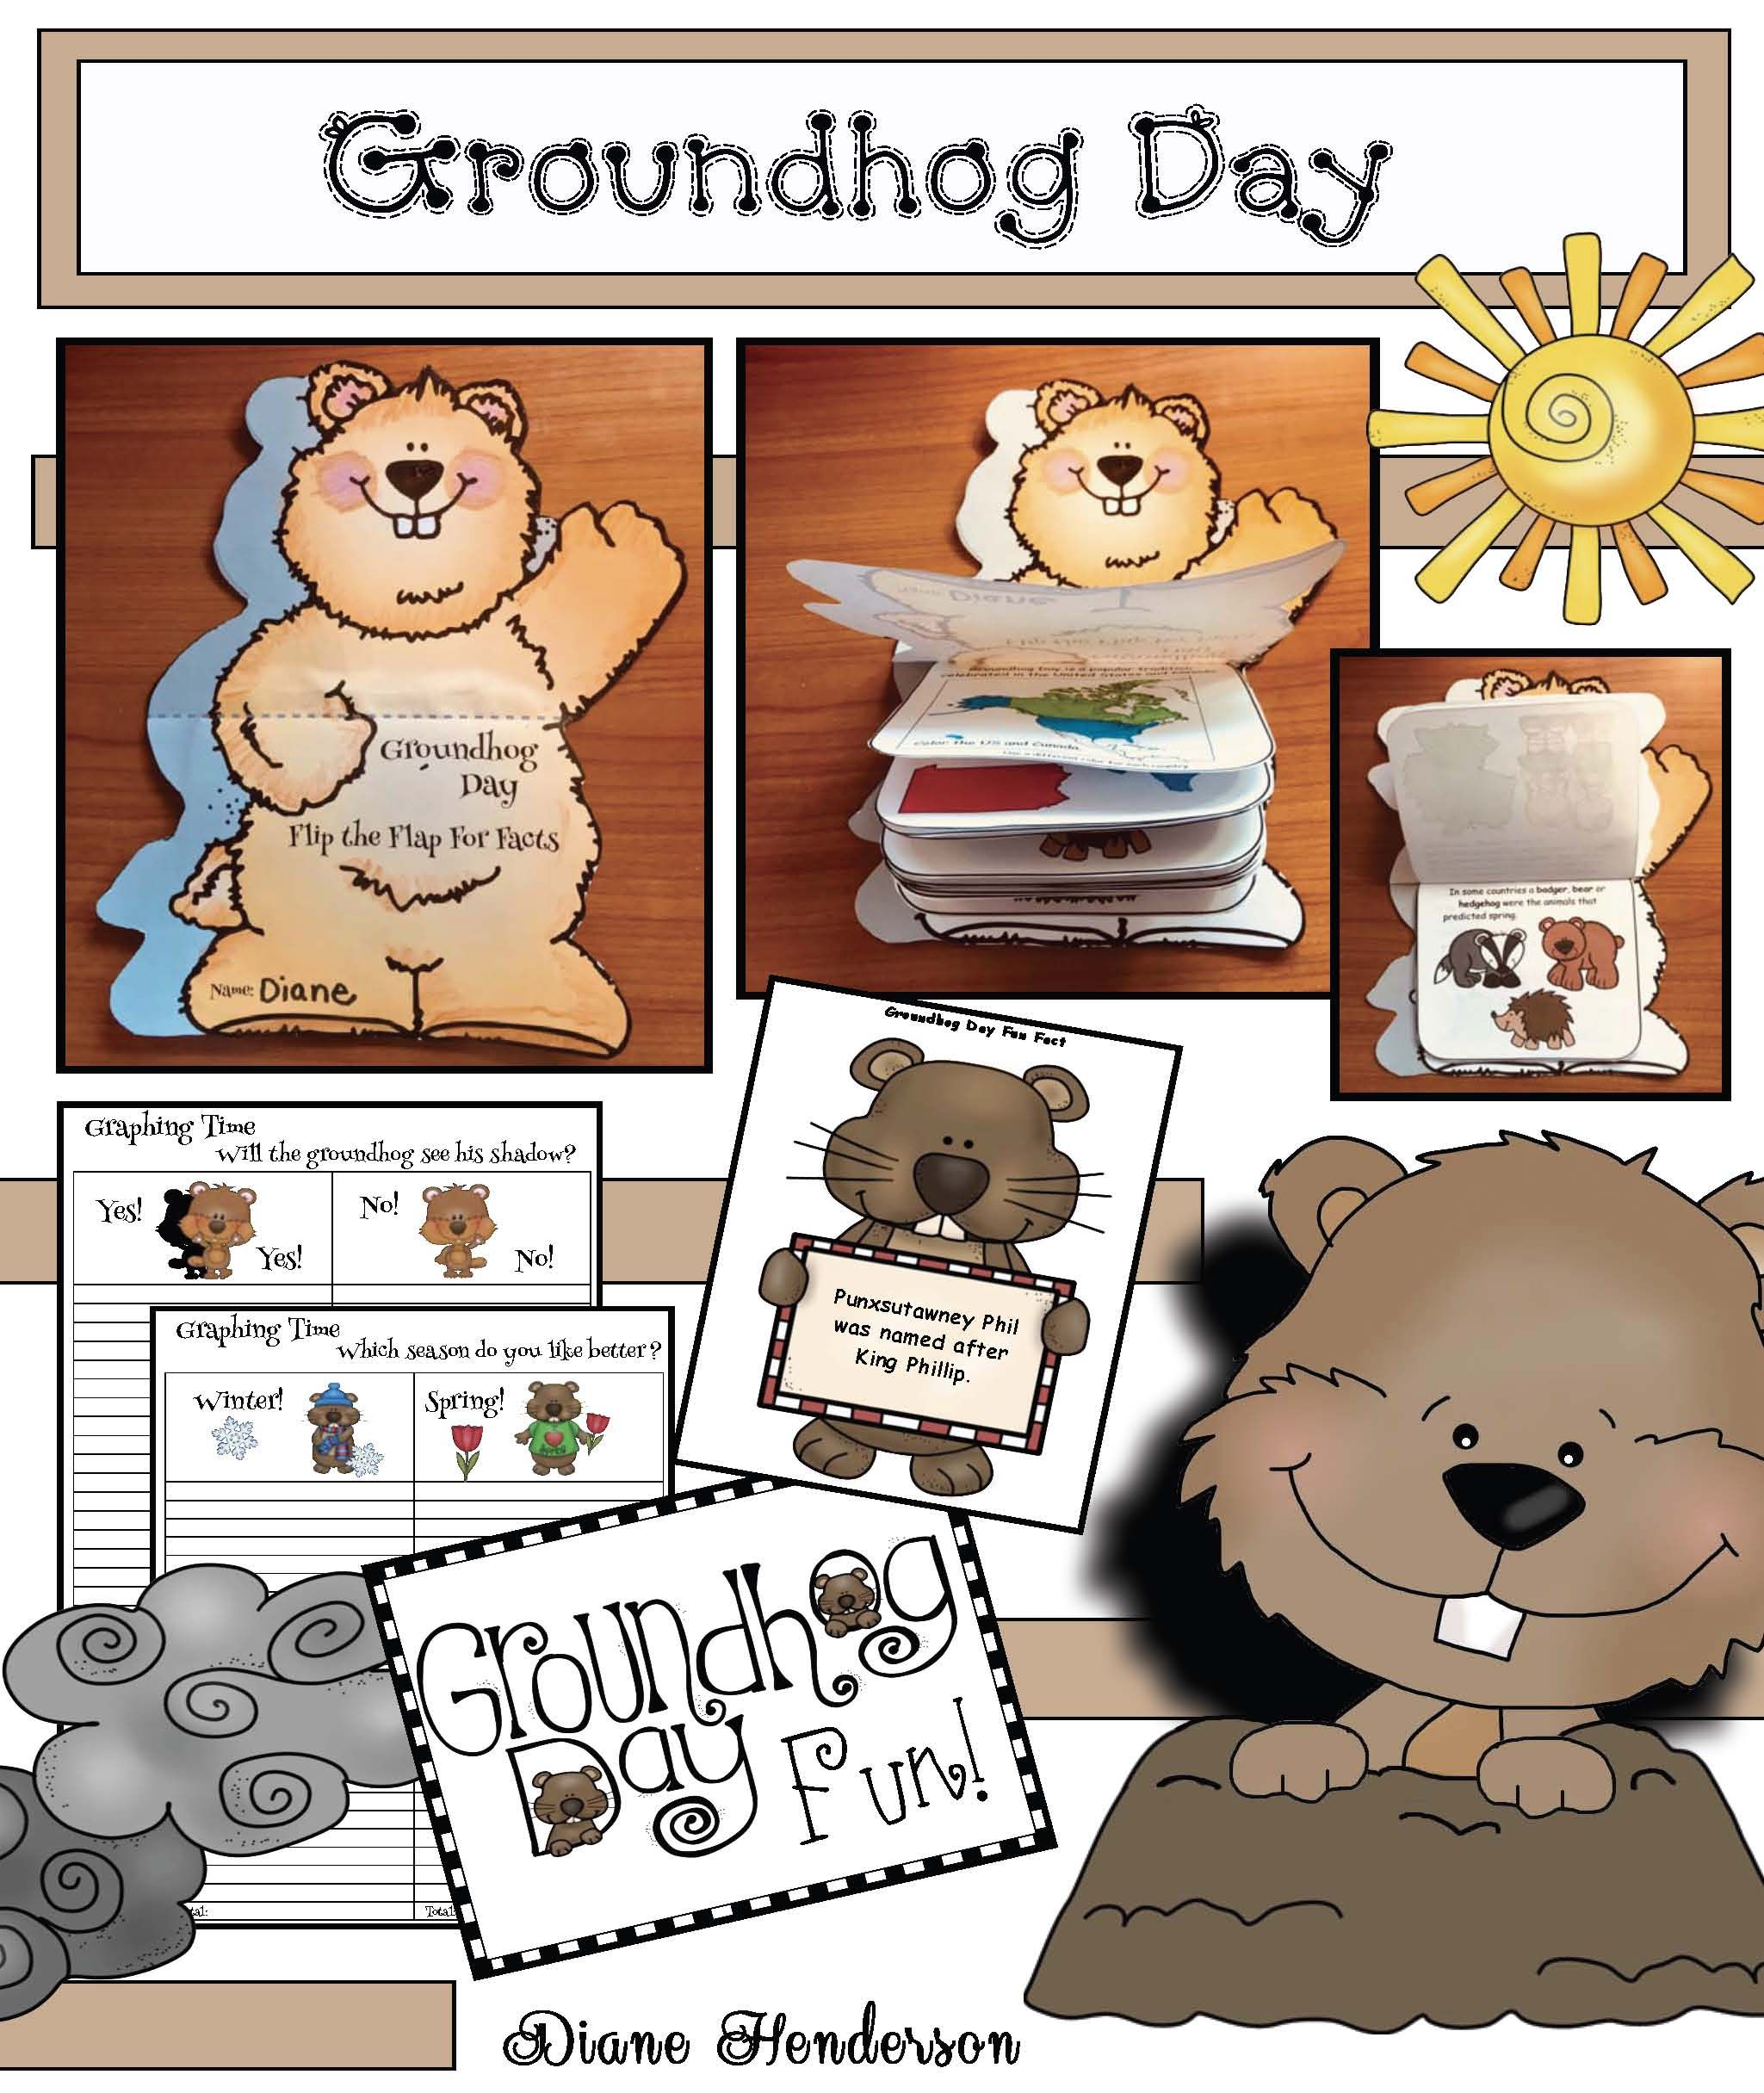 Groundhog Fun Facts Groundhog Crafts Pictures Of Real